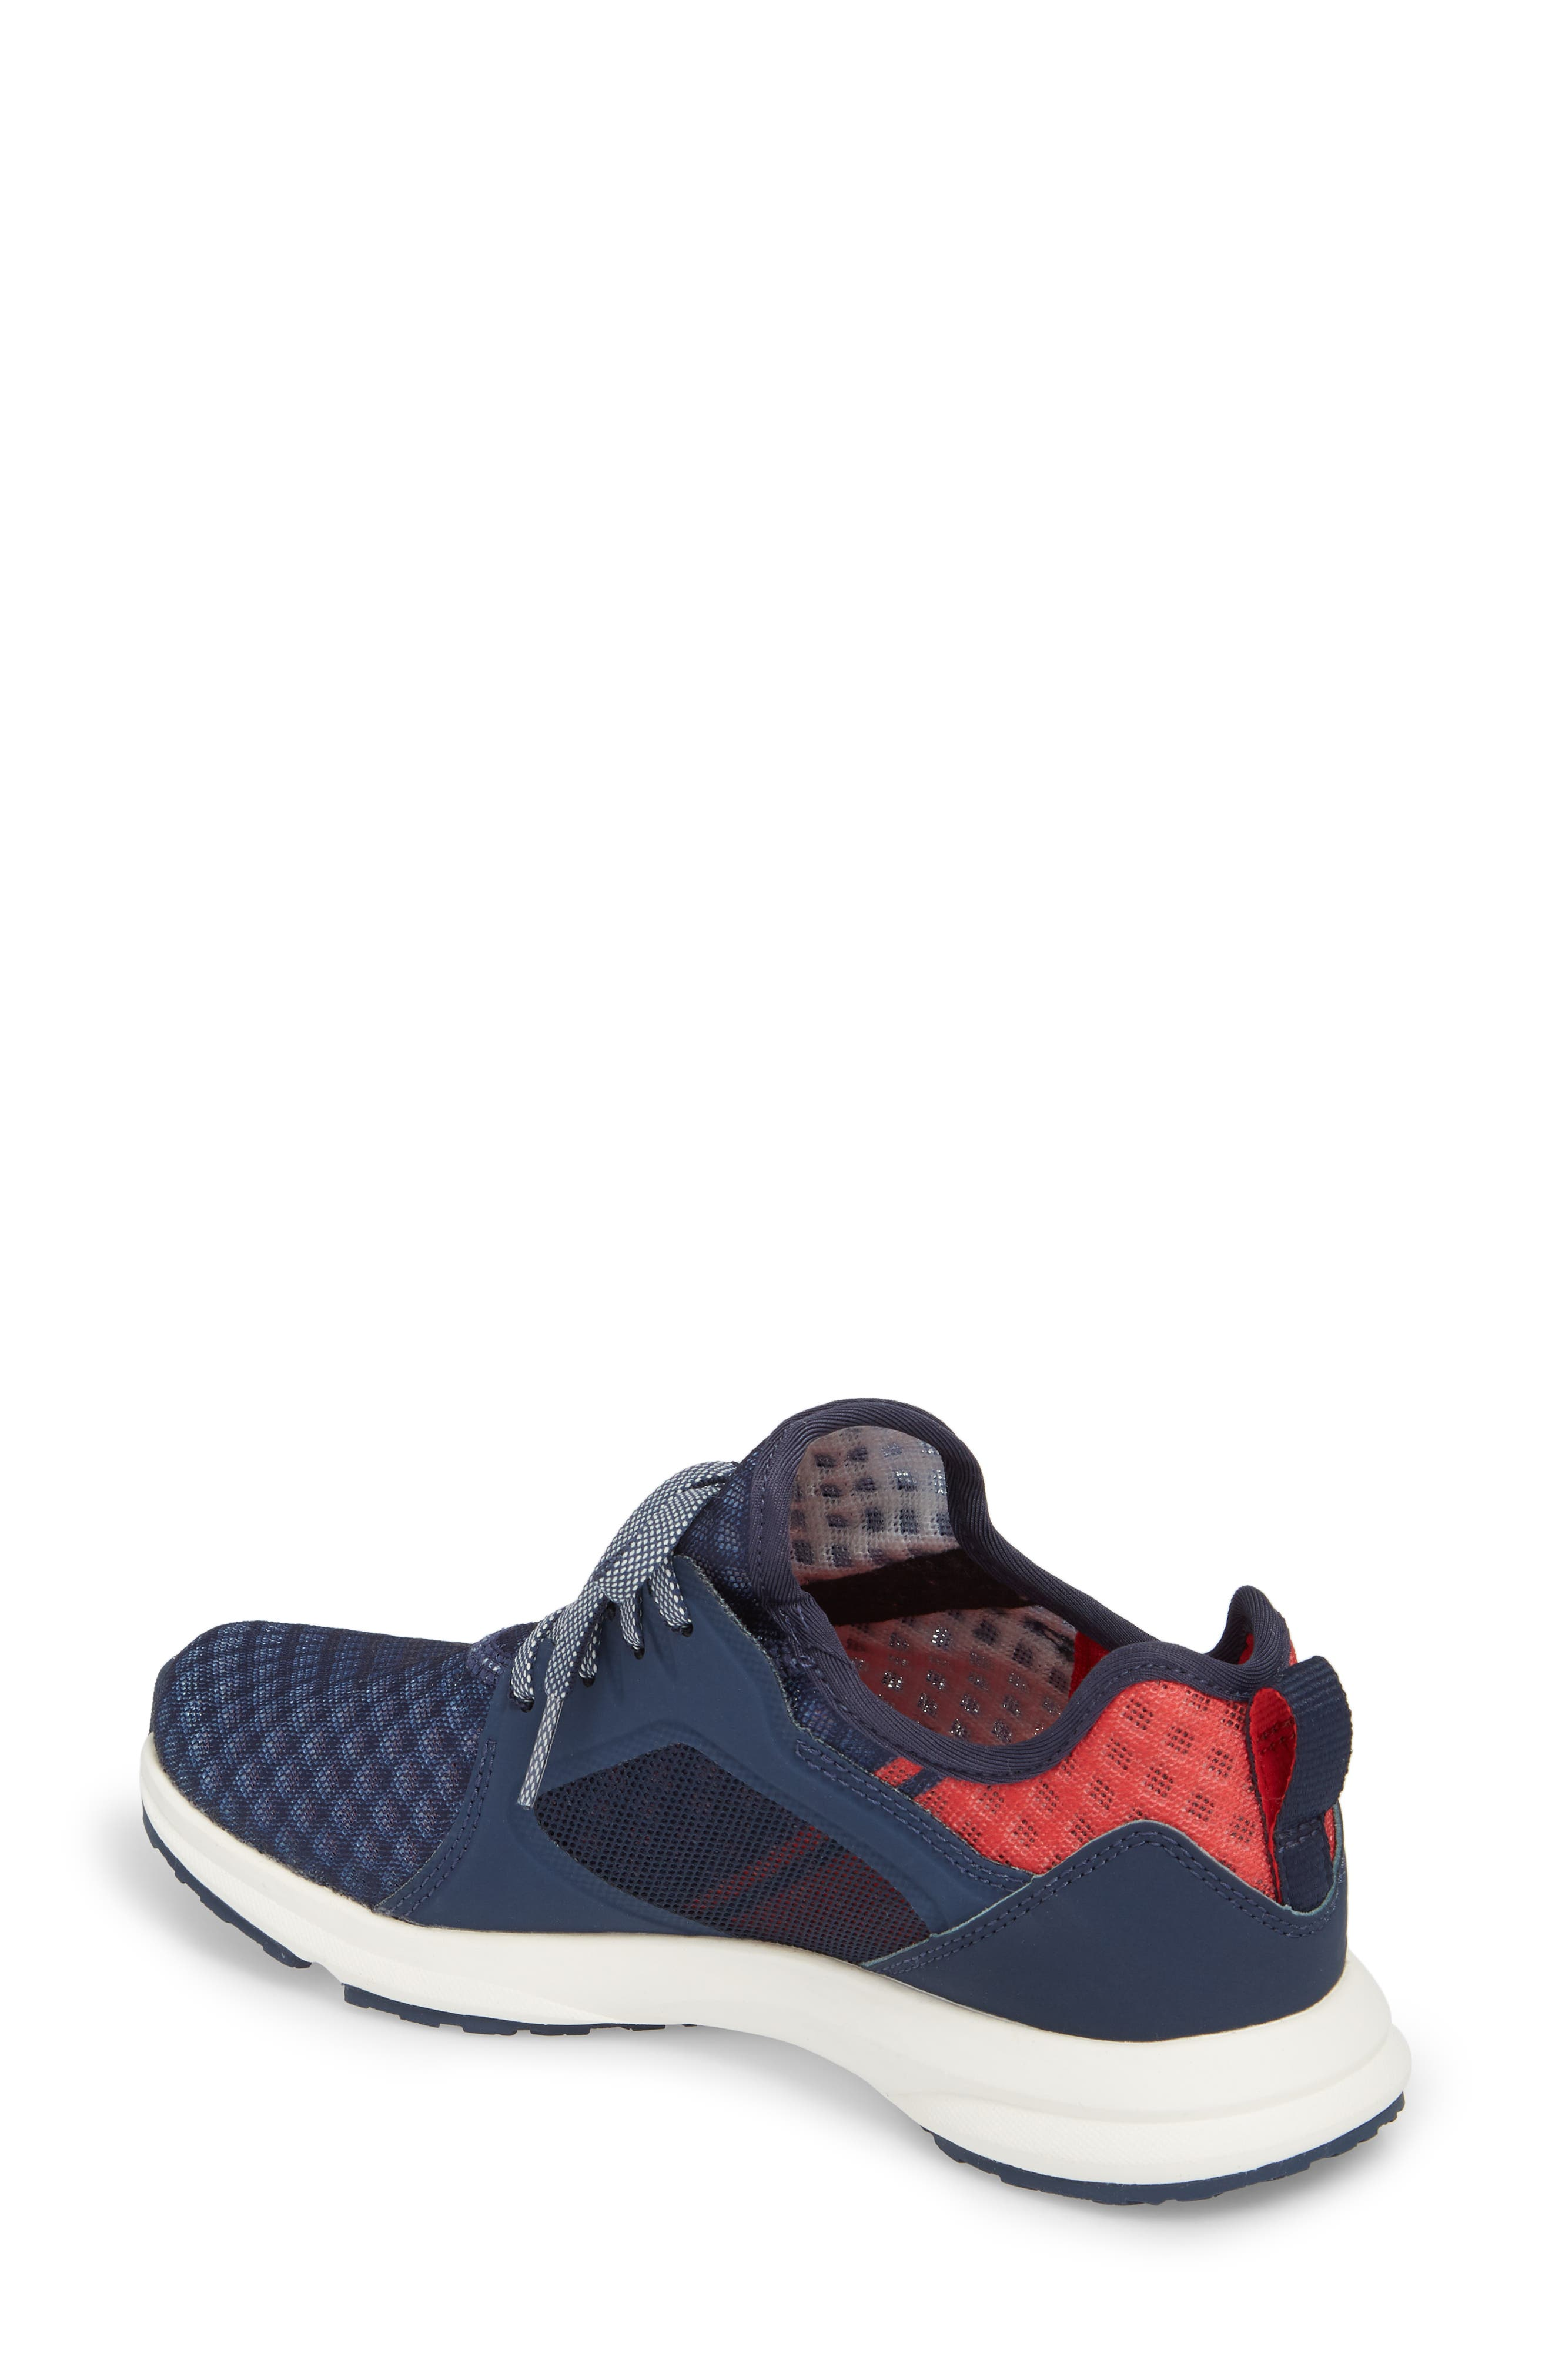 Fuse Print Sneaker,                             Alternate thumbnail 2, color,                             TEAM NAVY FABRIC